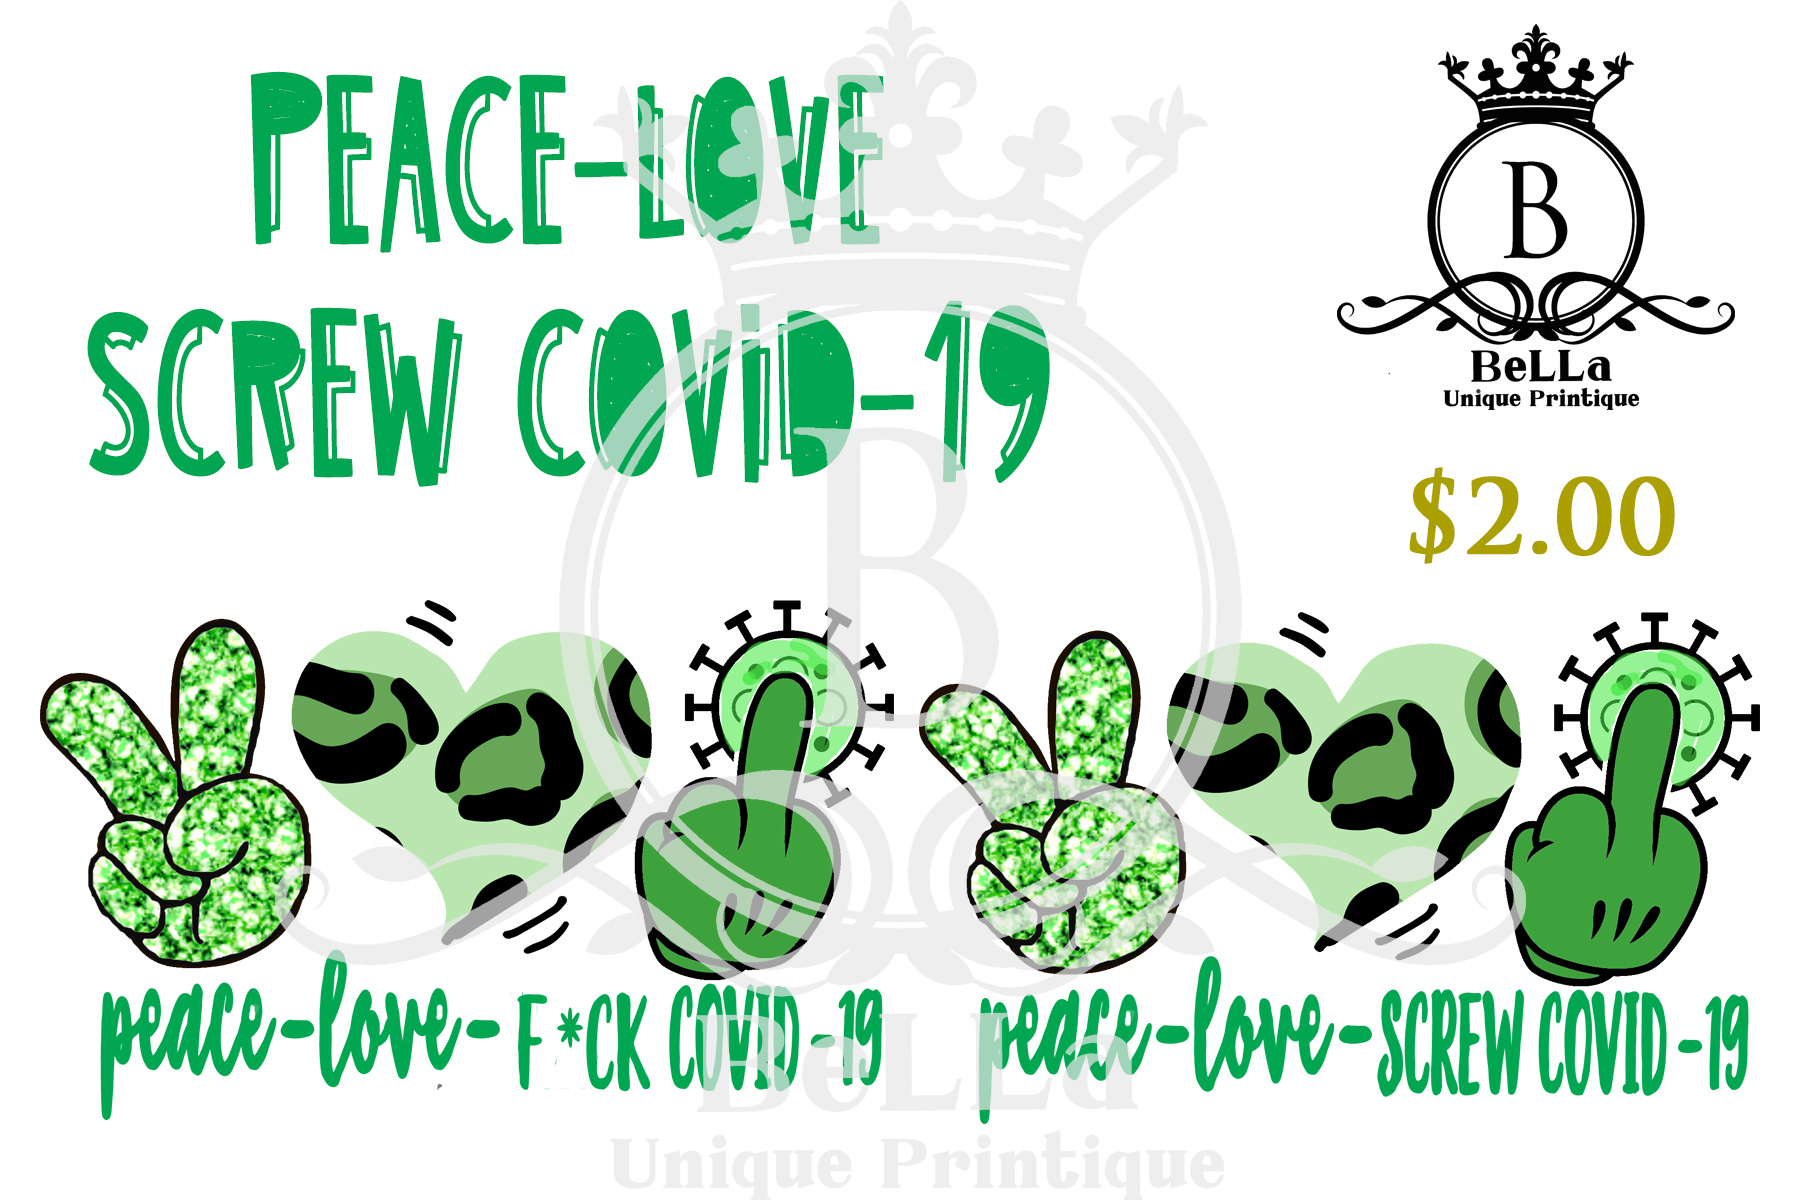 Download Free Peace Love Screw Covid 19 Green Graphic By Bellauniqueprintique for Cricut Explore, Silhouette and other cutting machines.